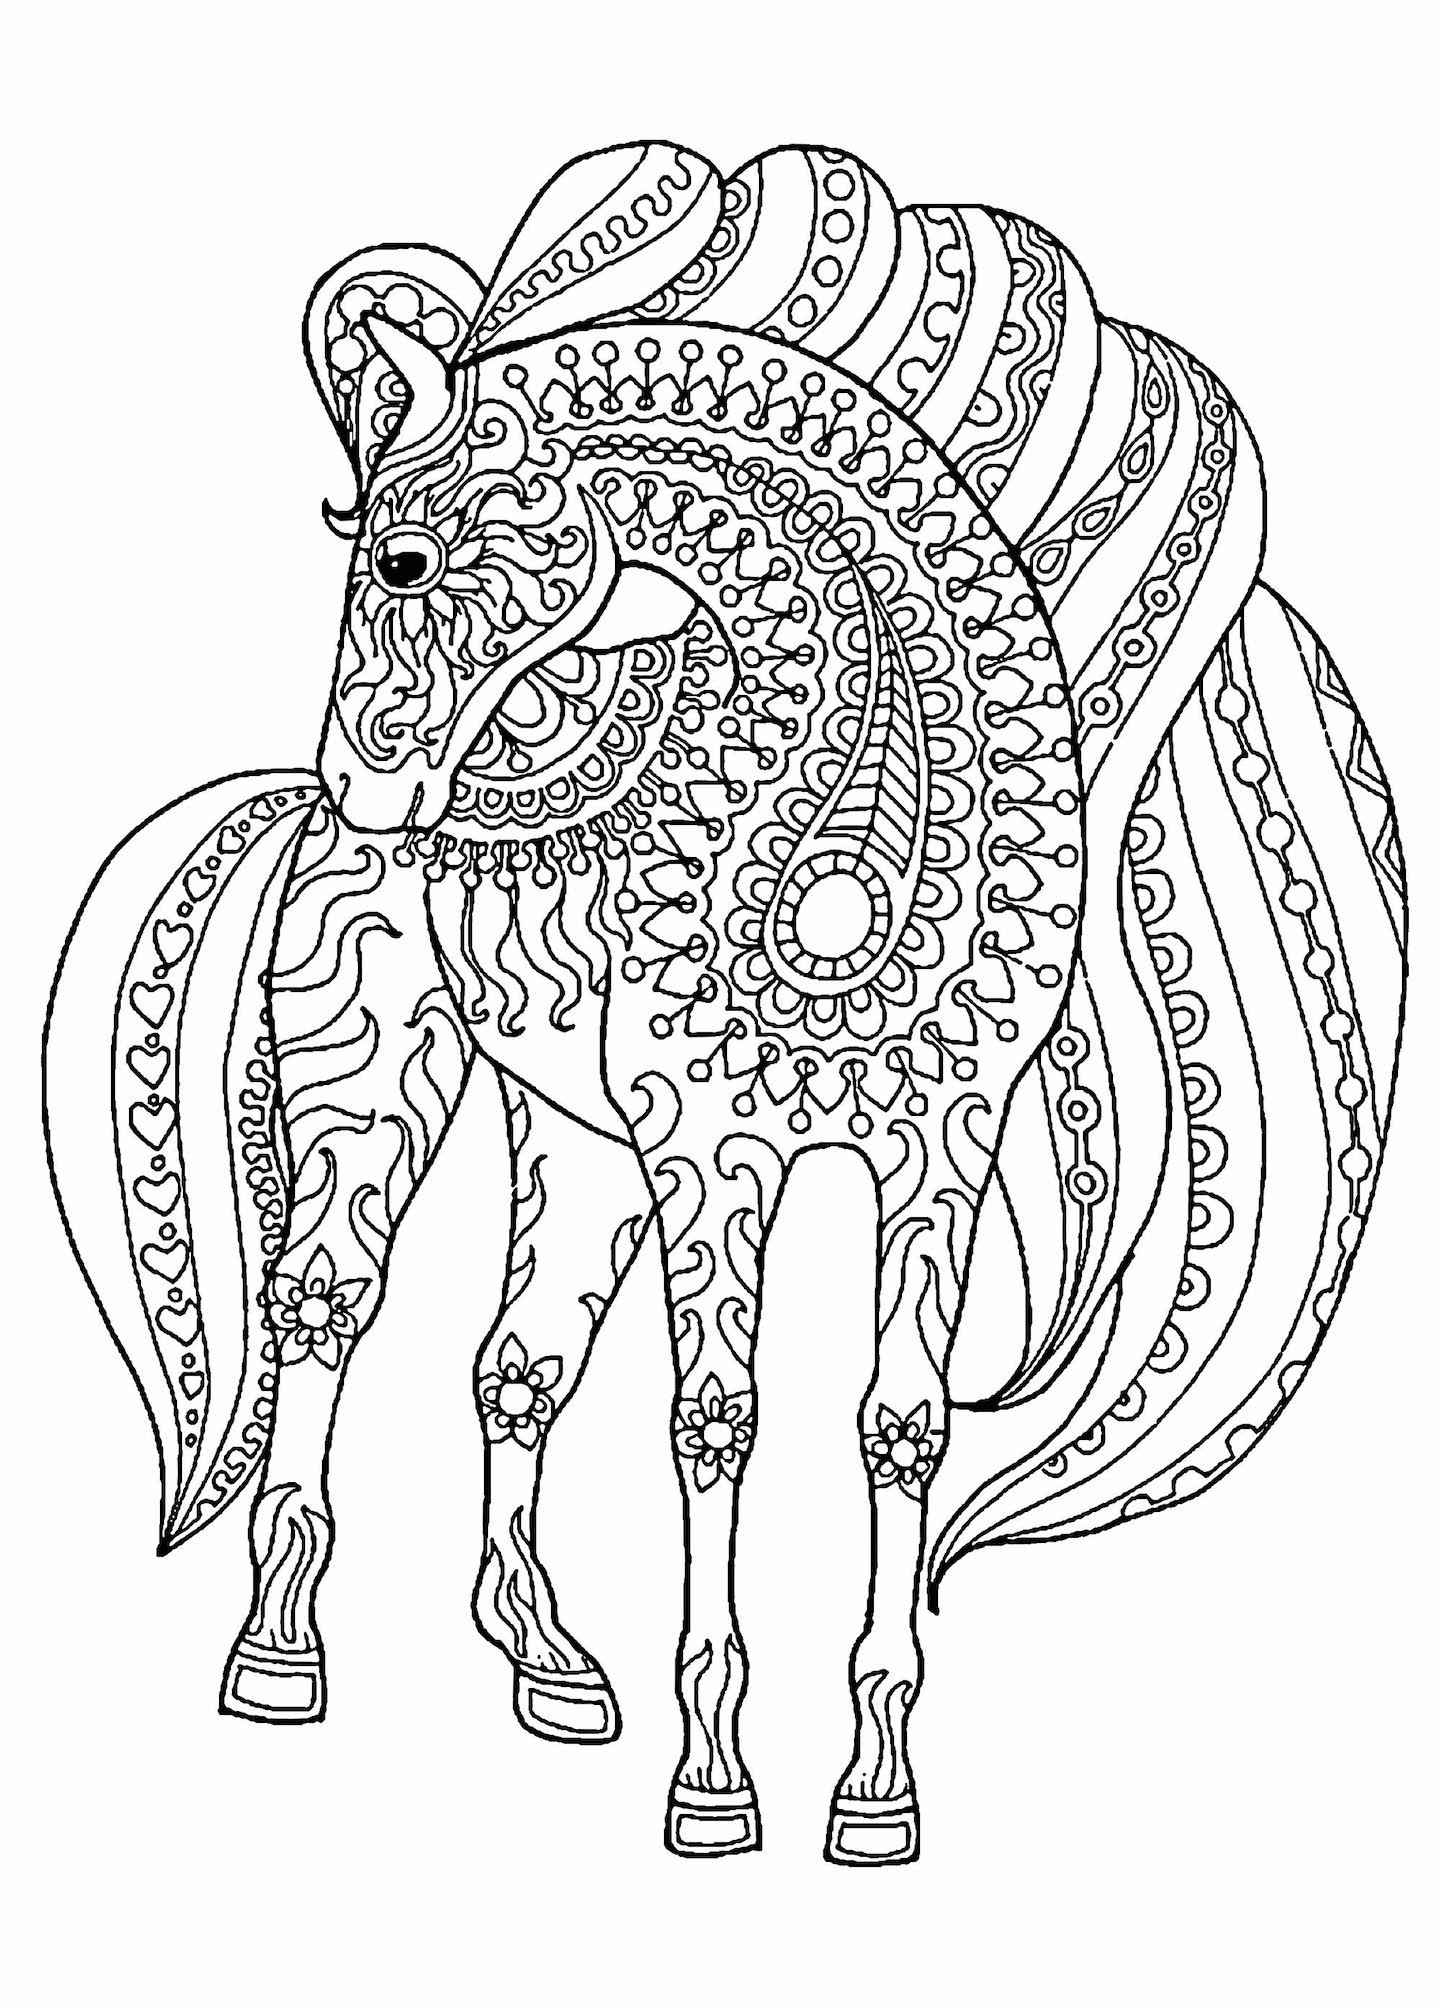 horse coloring sheets horse coloring pages preschool and kindergarten horse coloring sheets